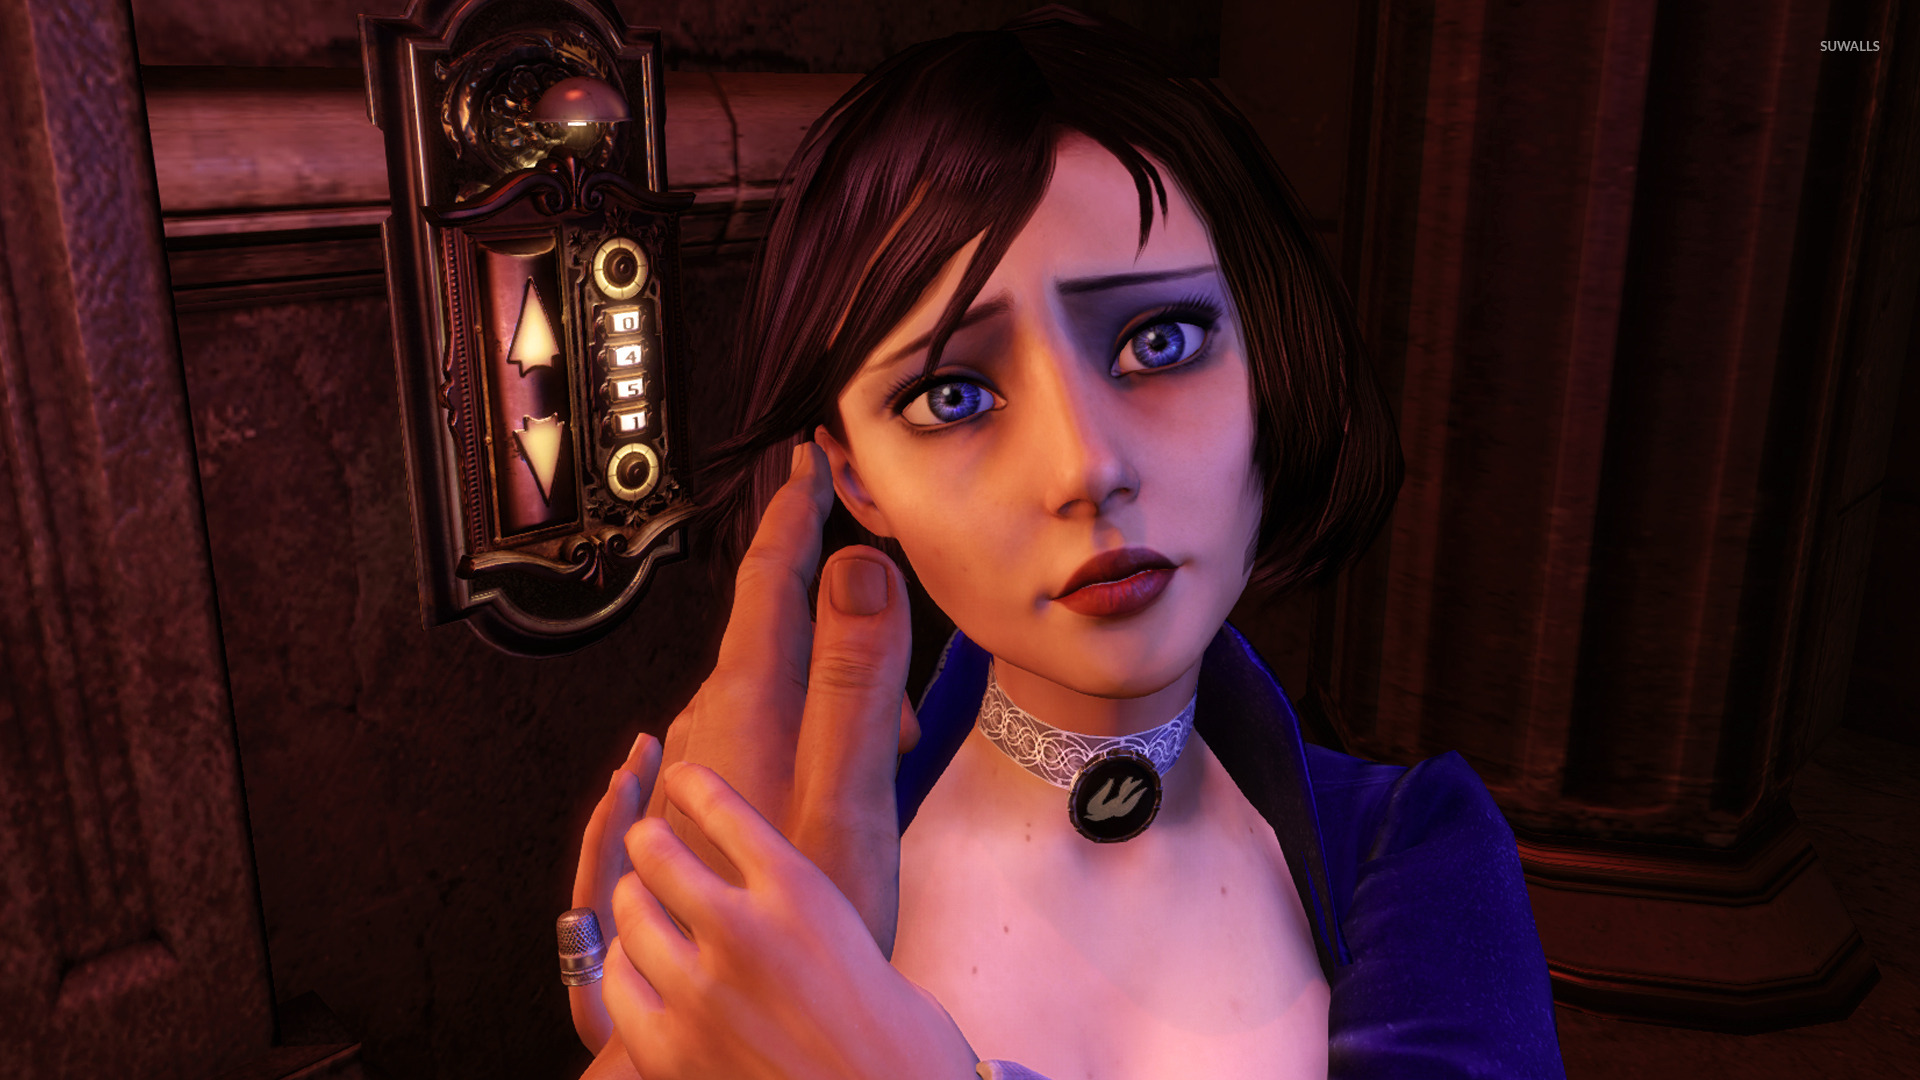 elizabeth bioshock infinite wallpapers - photo #7